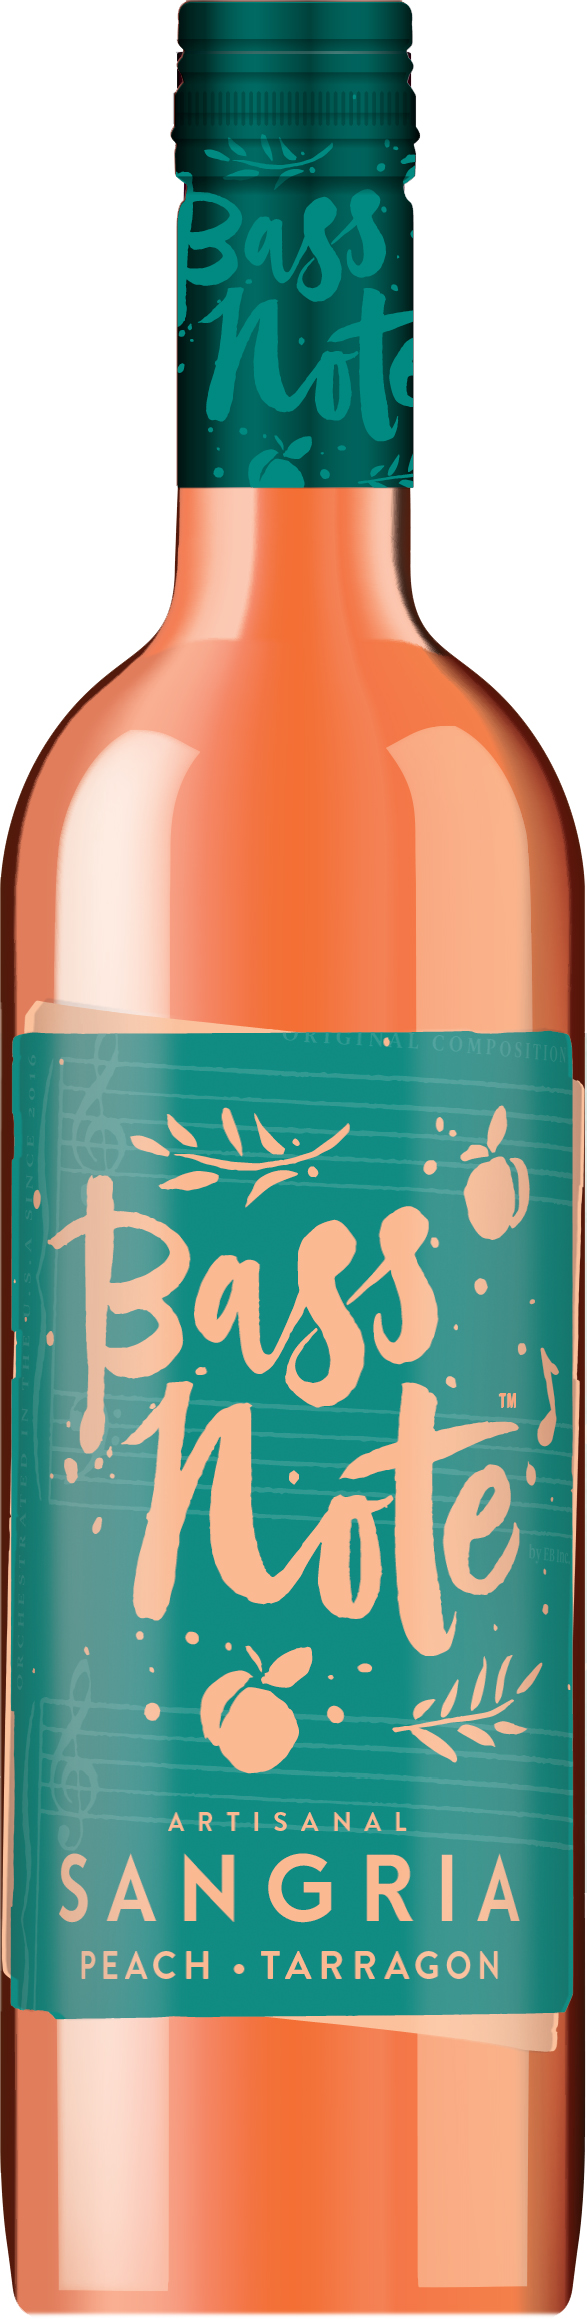 Bass Note Sangria - Peach Tarragon 750ml